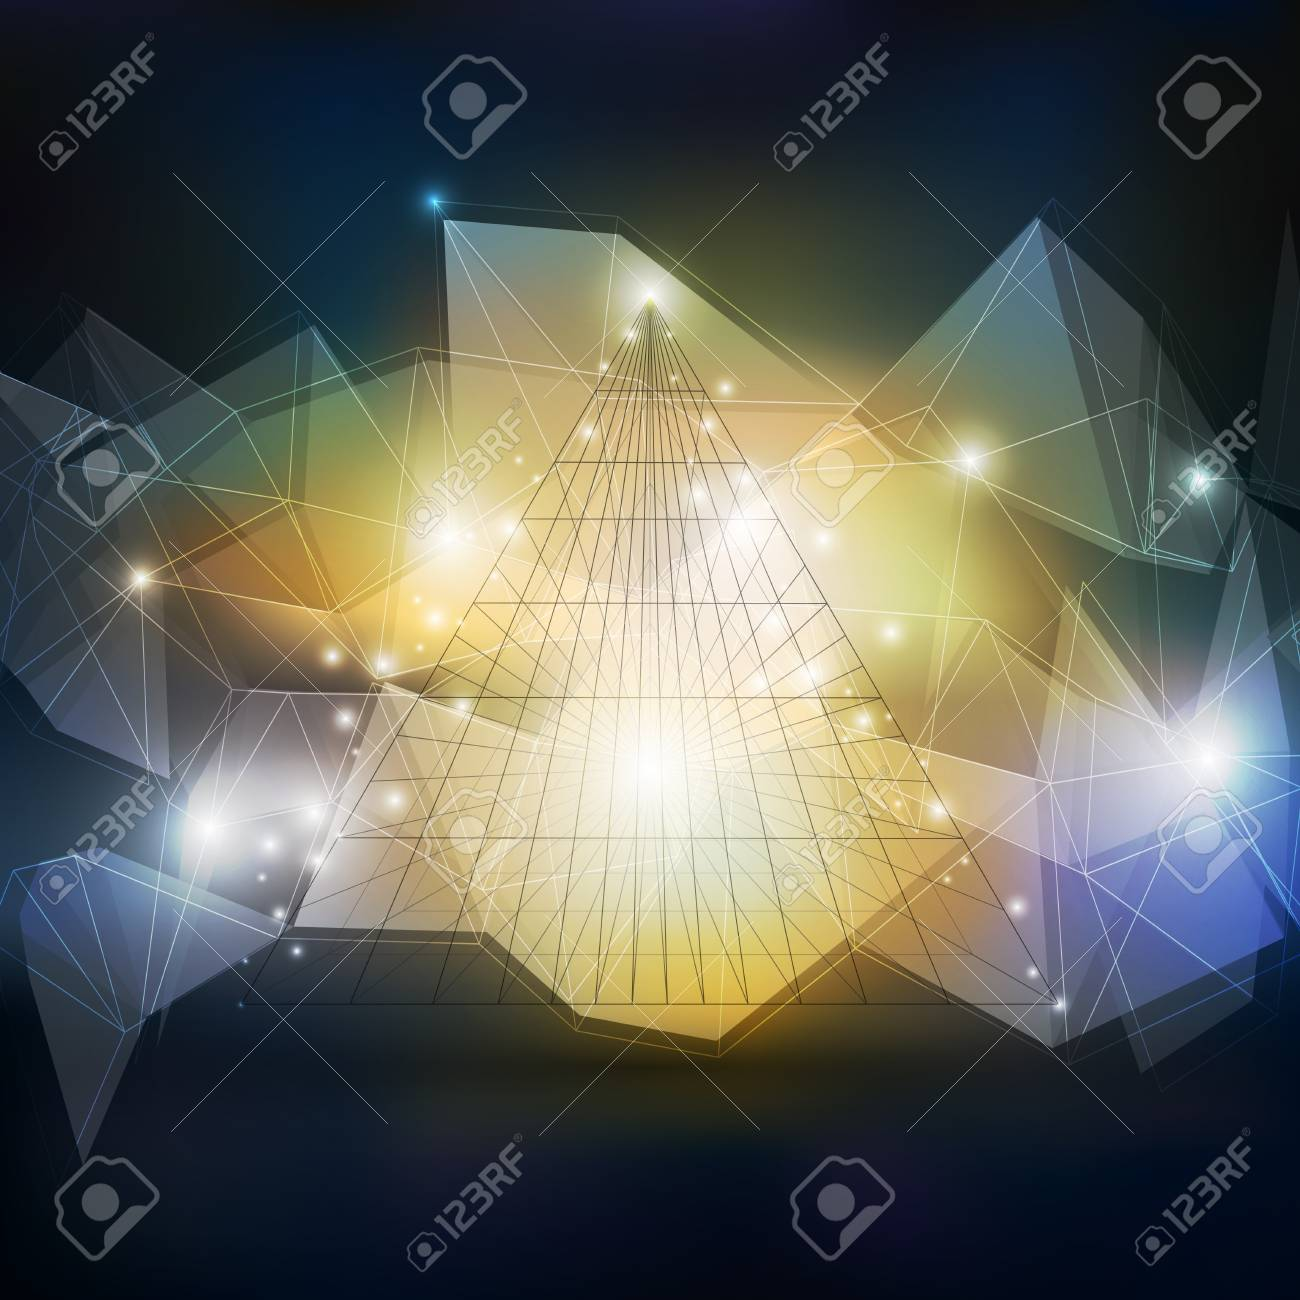 abstract 3d pyramid geometric colorful triangle design template